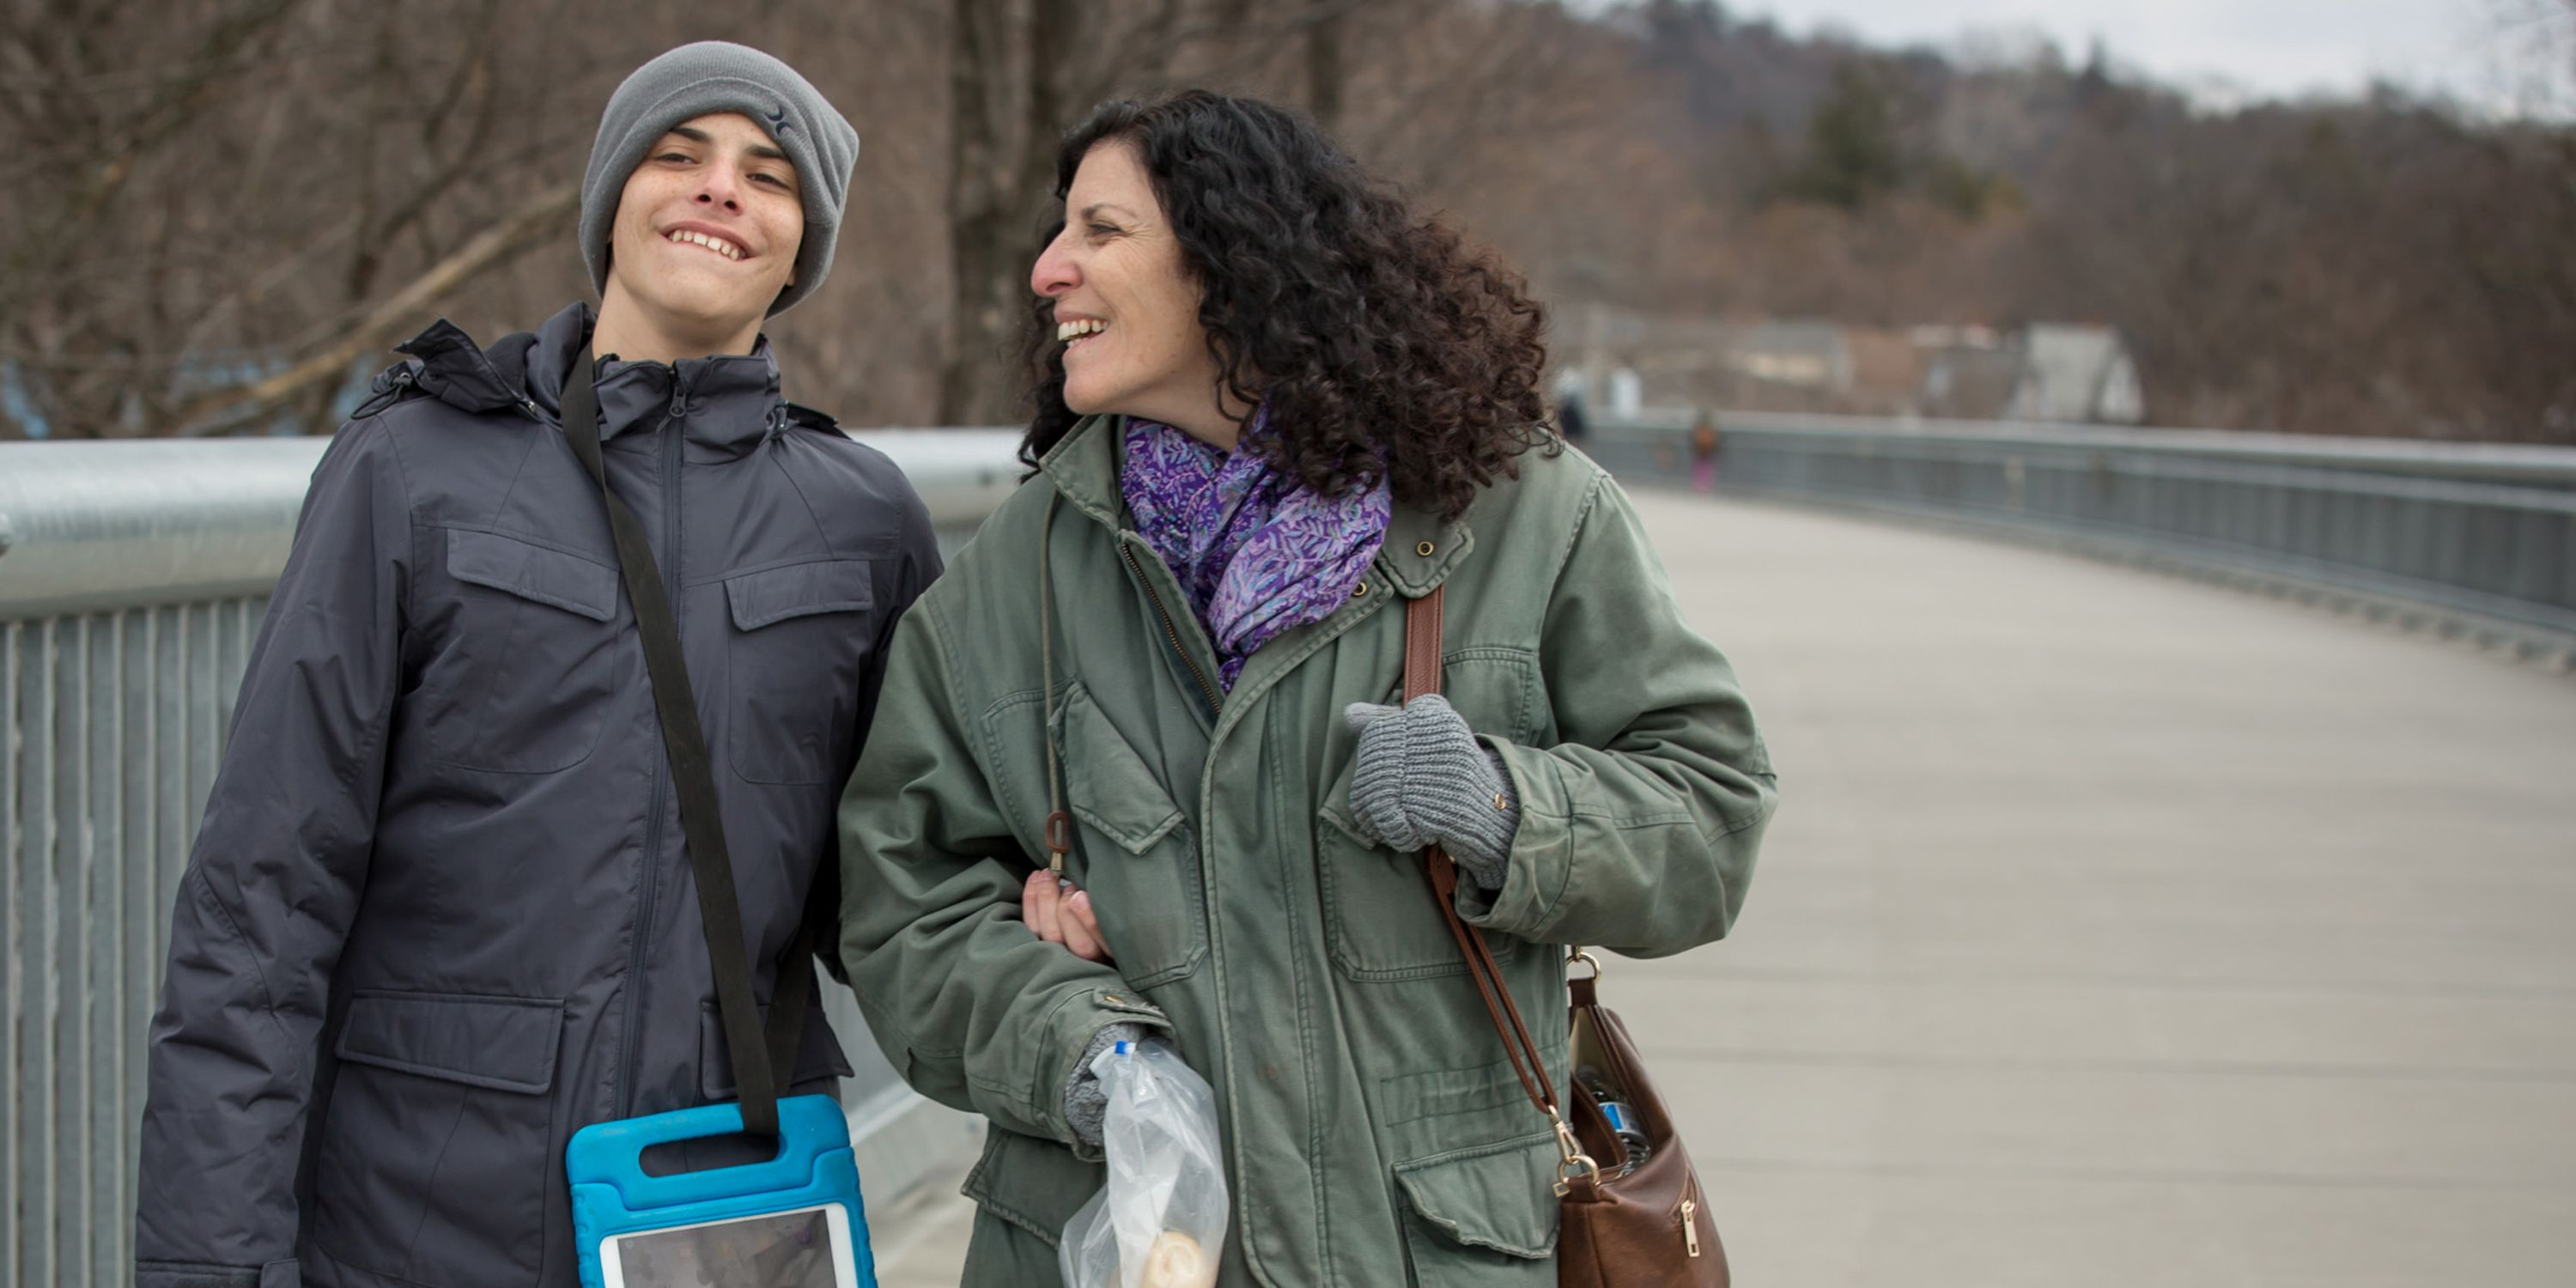 A boy in a grey hat and jacket walks arm in arm with a woman in a green jacket and purple scarf. The woman has dark curly hair and is smiling at the boy who looks straight ahead.